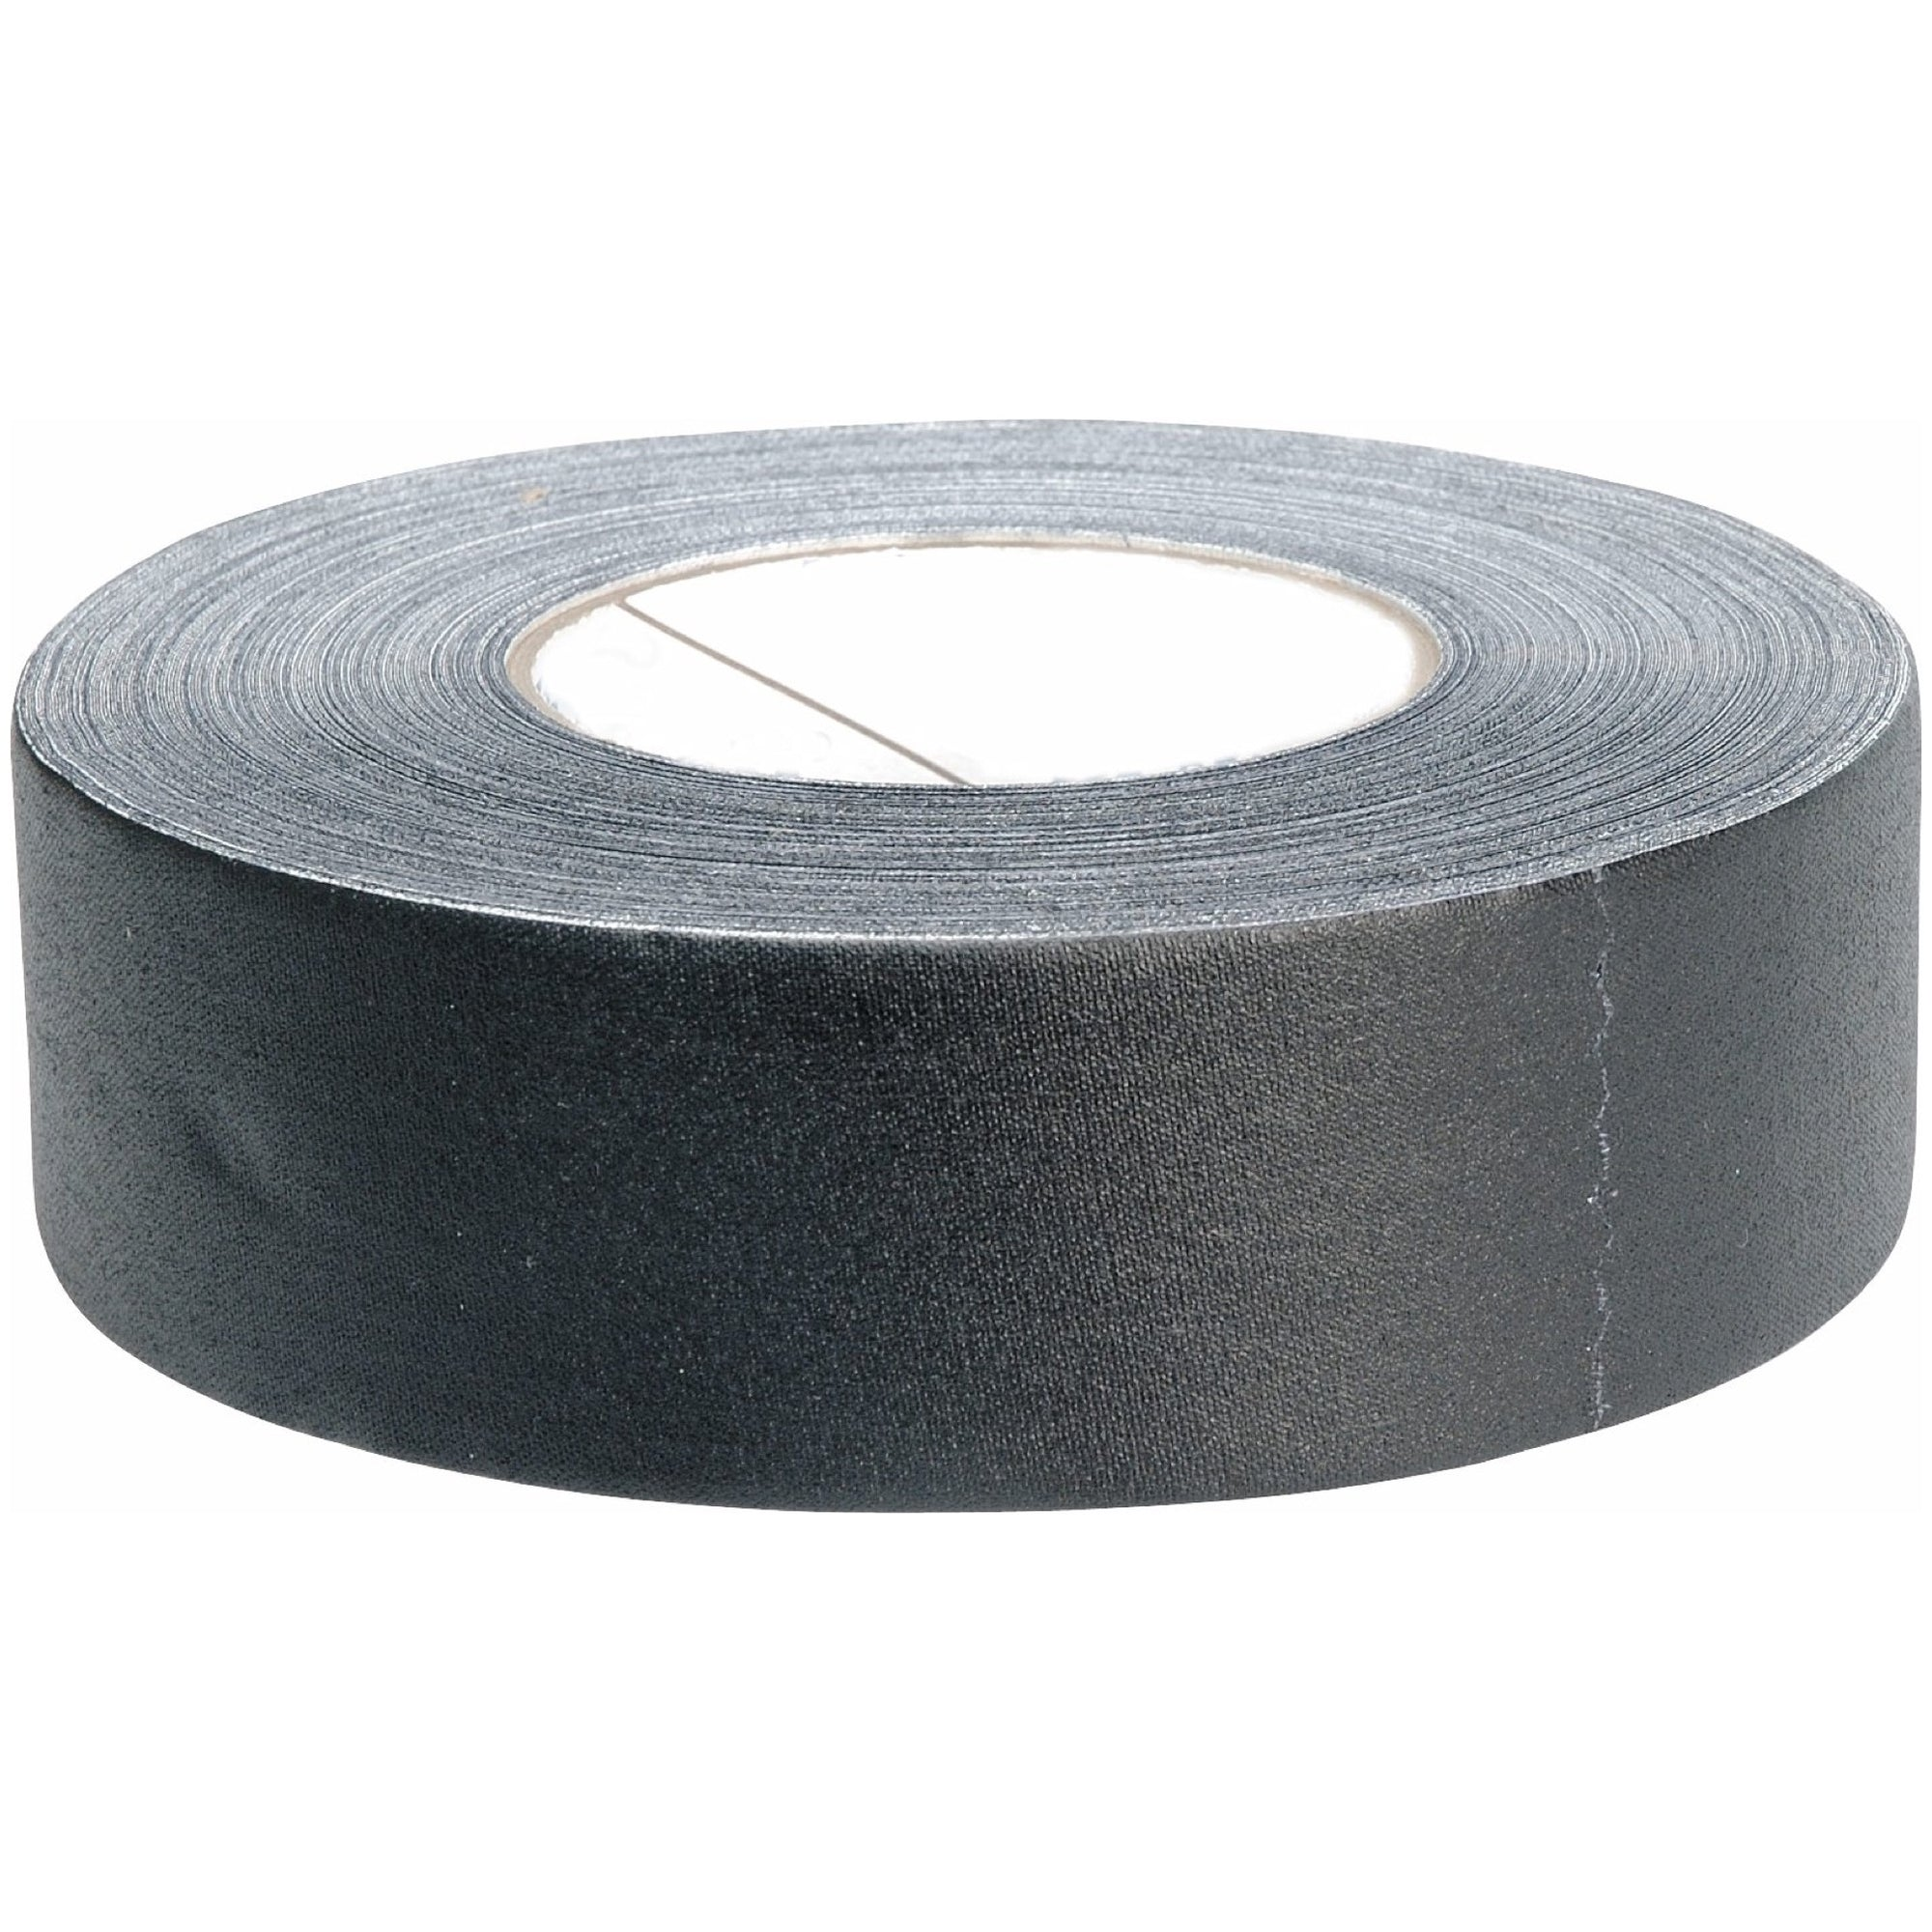 Hosa GFT Gaffer's Tape, Black, GFT450BK, 3 Inch Wide, 180 Foot